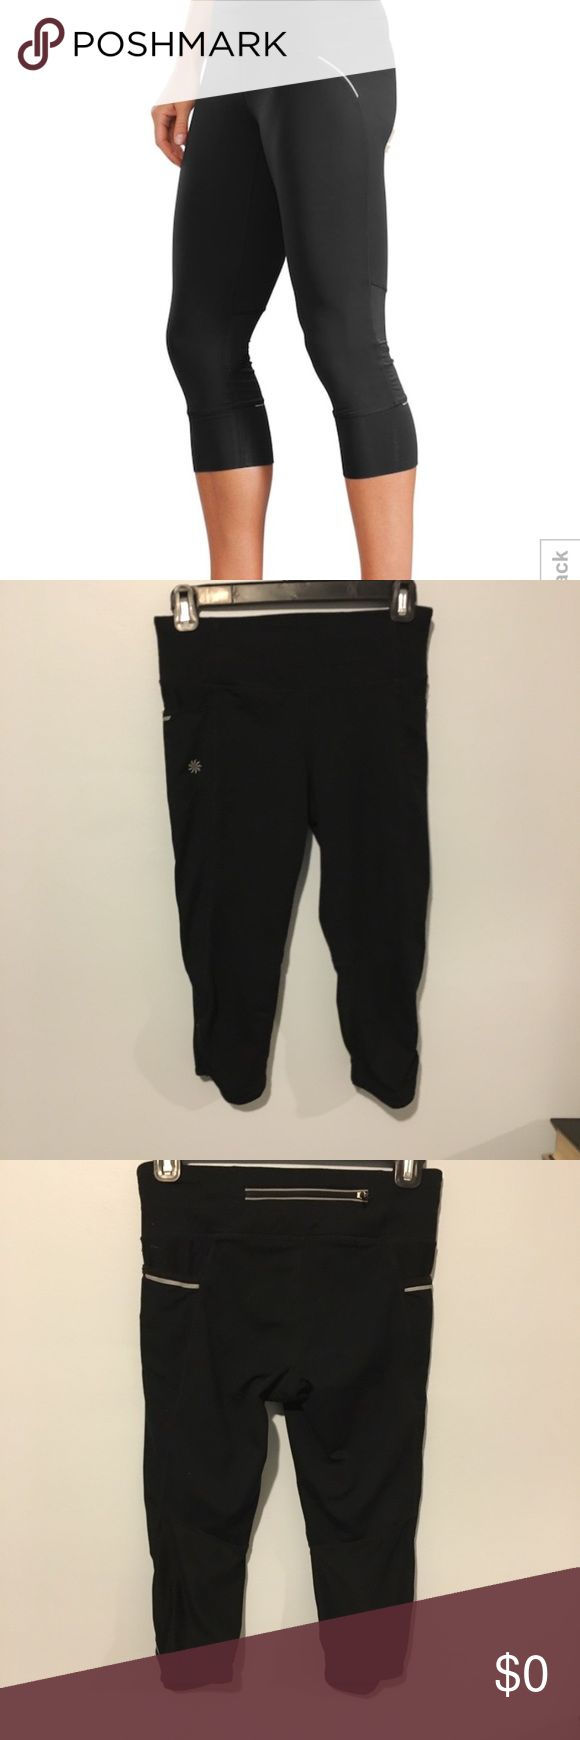 "Athleta Black Workout Capri Leggings Pants XS Cute little pair of workout capris. First photo is stock and slightly differs from actual design on this pair. Back zipper, side mesh panels and reflective strips.  Measurements:  Waist 13.5 Ankle opening 5"" Inseam 14"" Athleta Pants Leggings"